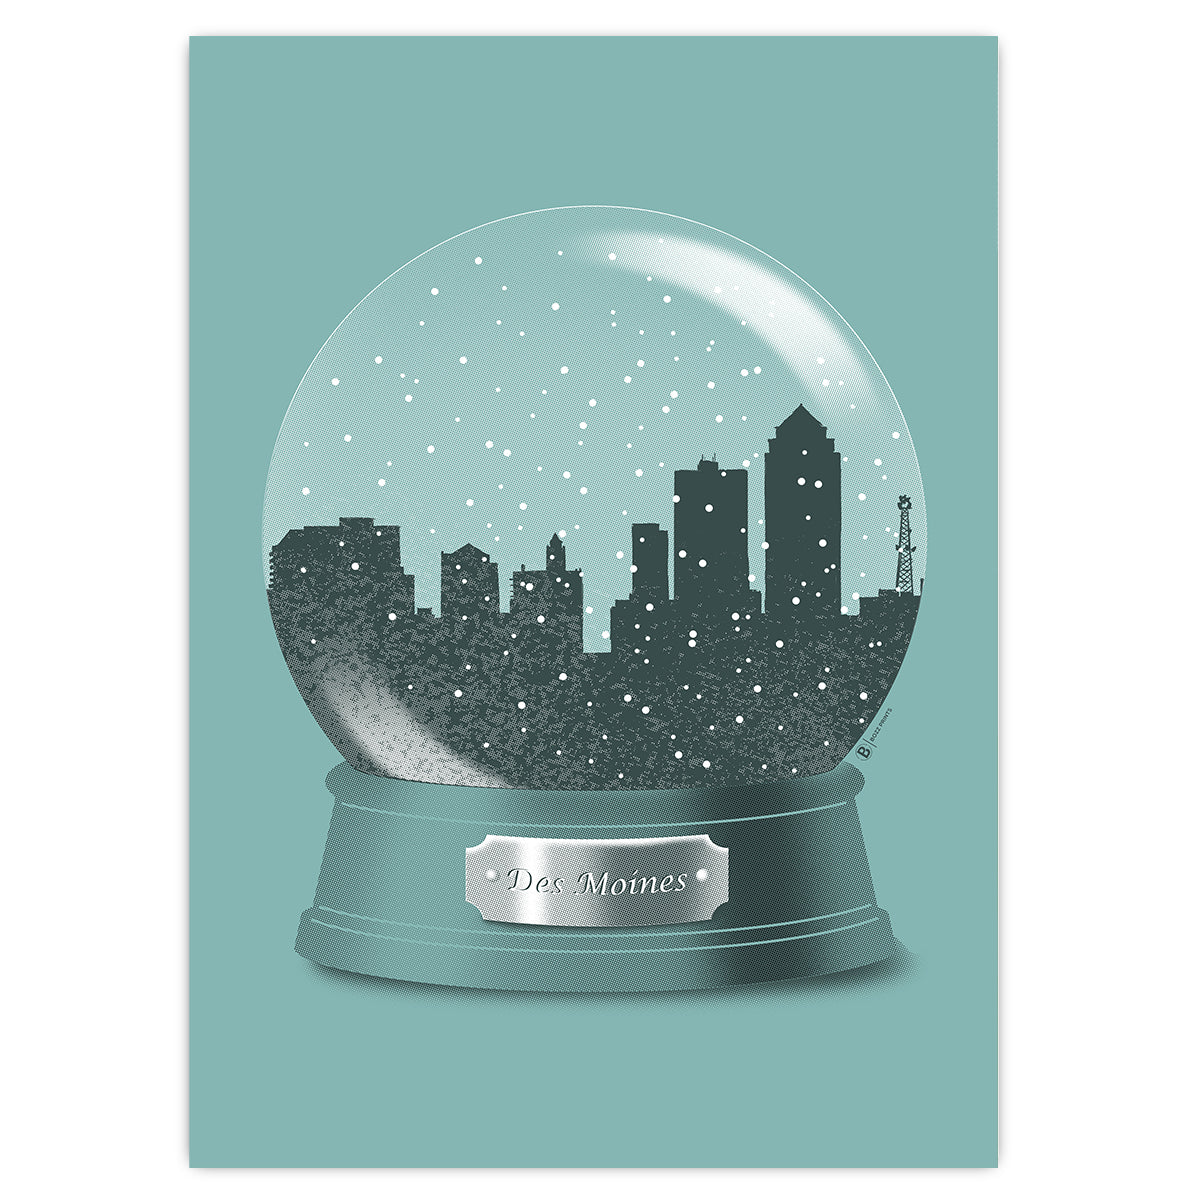 Des Moines Snow Globe Greeting Card